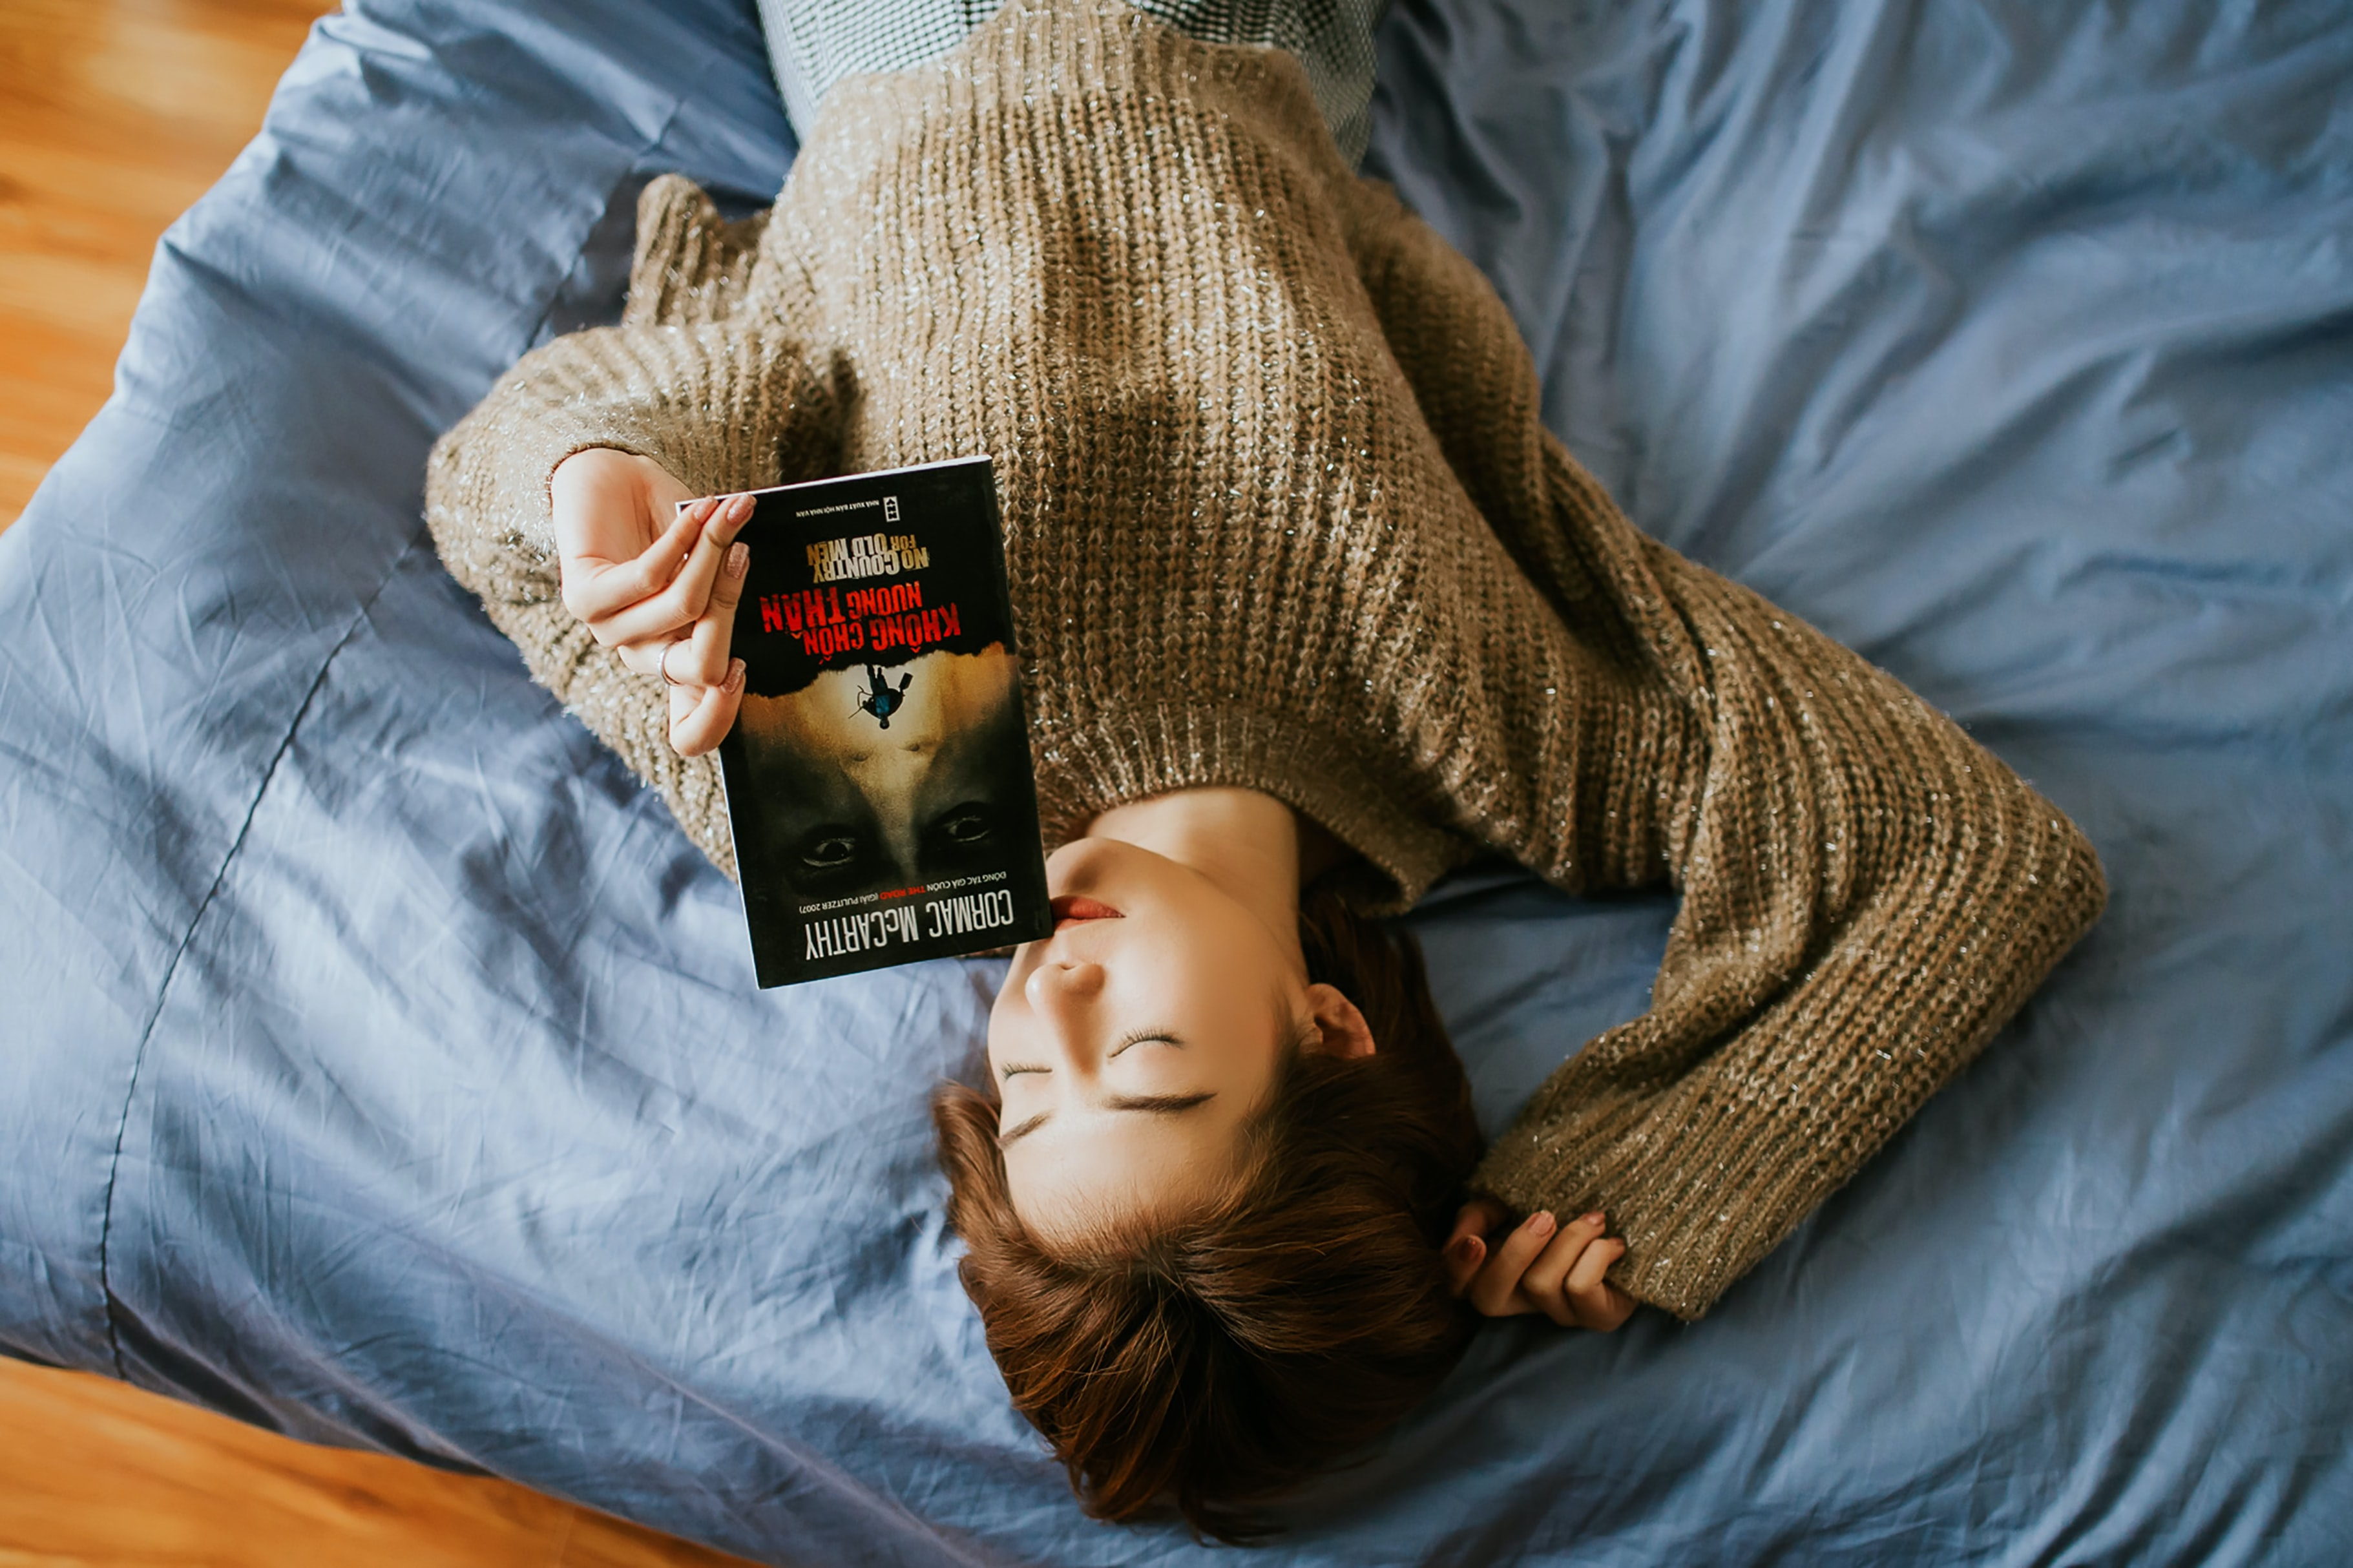 woman in sweater holding book while lying on bed